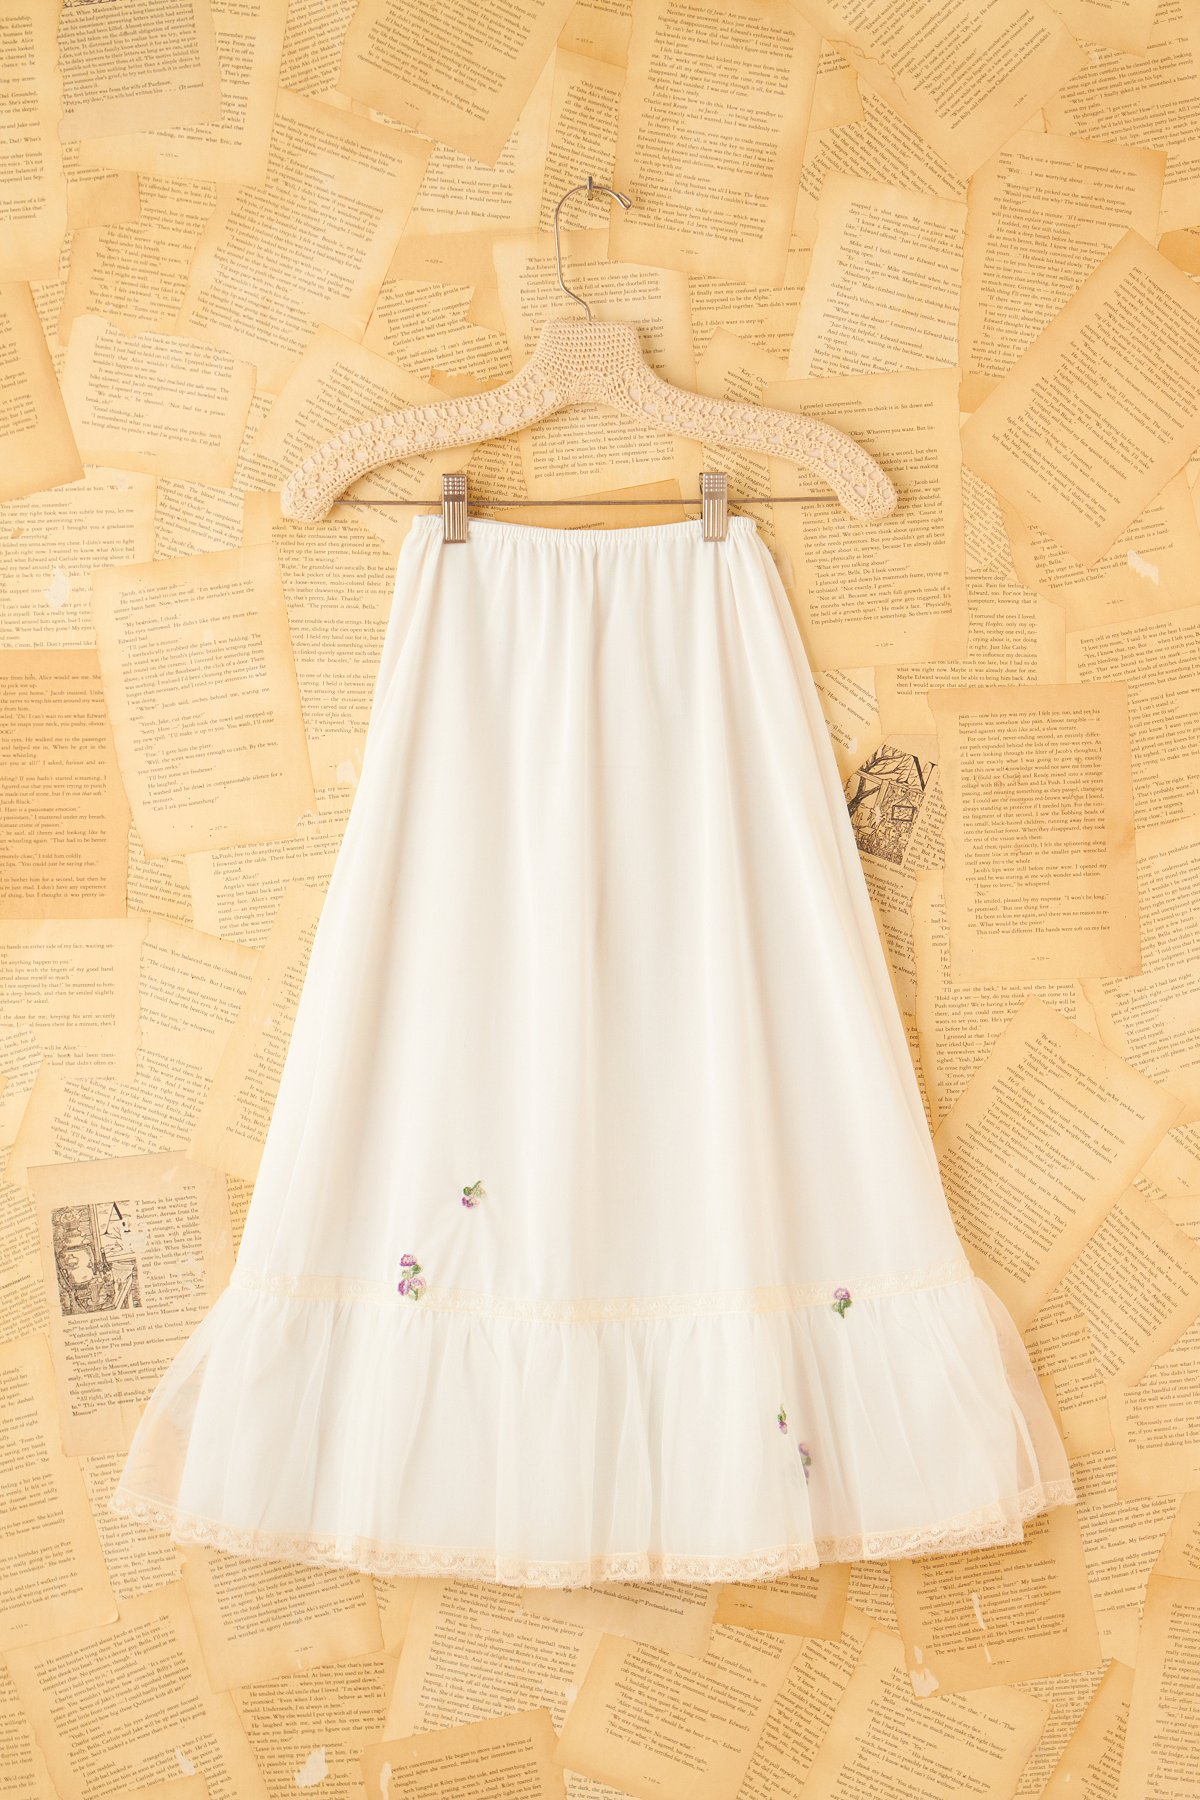 Vintage White Slip Skirt with Rose Embroidery